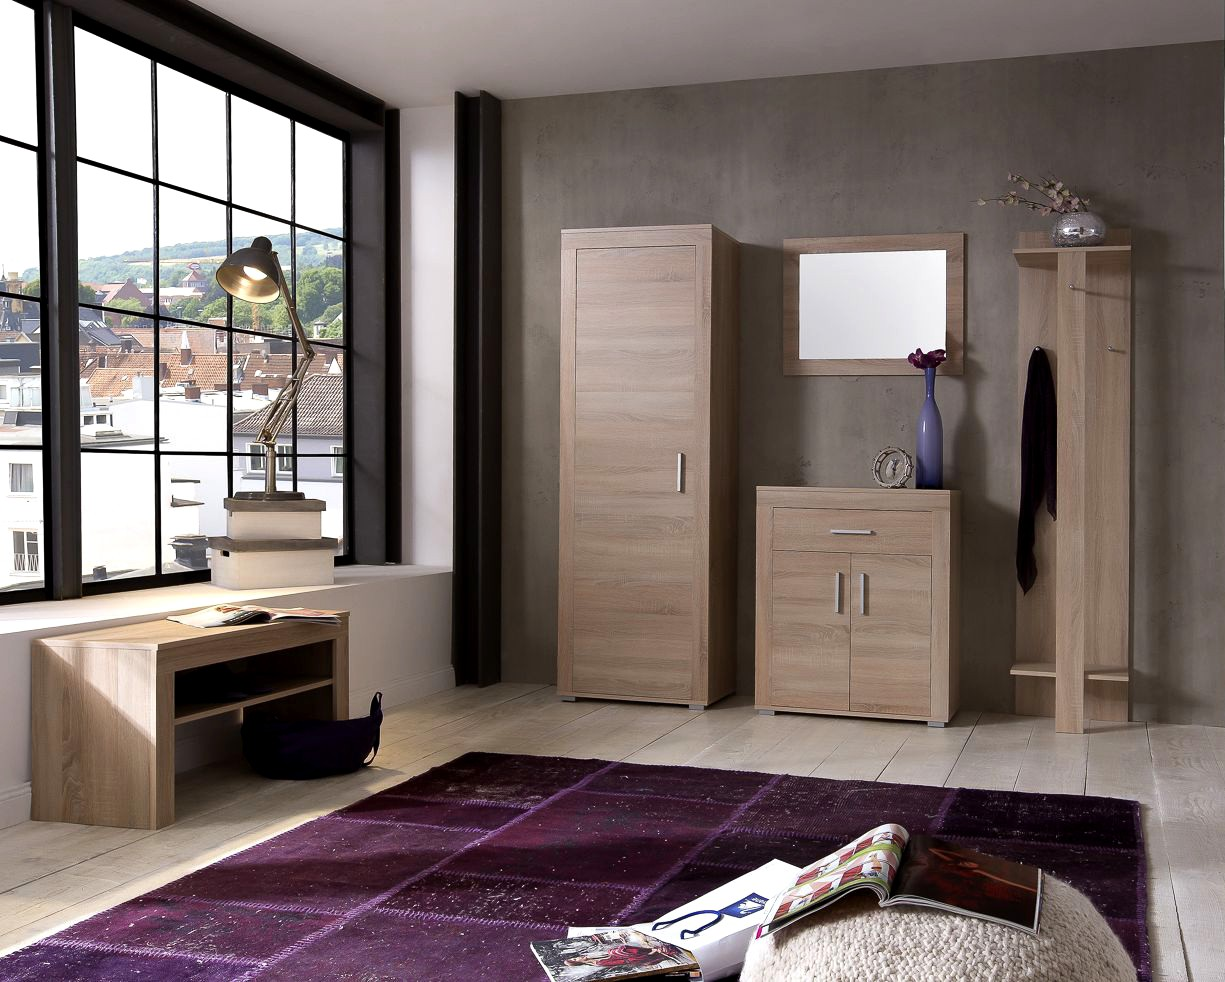 garderobenschrank lake 1 t rig 60 cm breit eiche sonoma wohnen diele. Black Bedroom Furniture Sets. Home Design Ideas